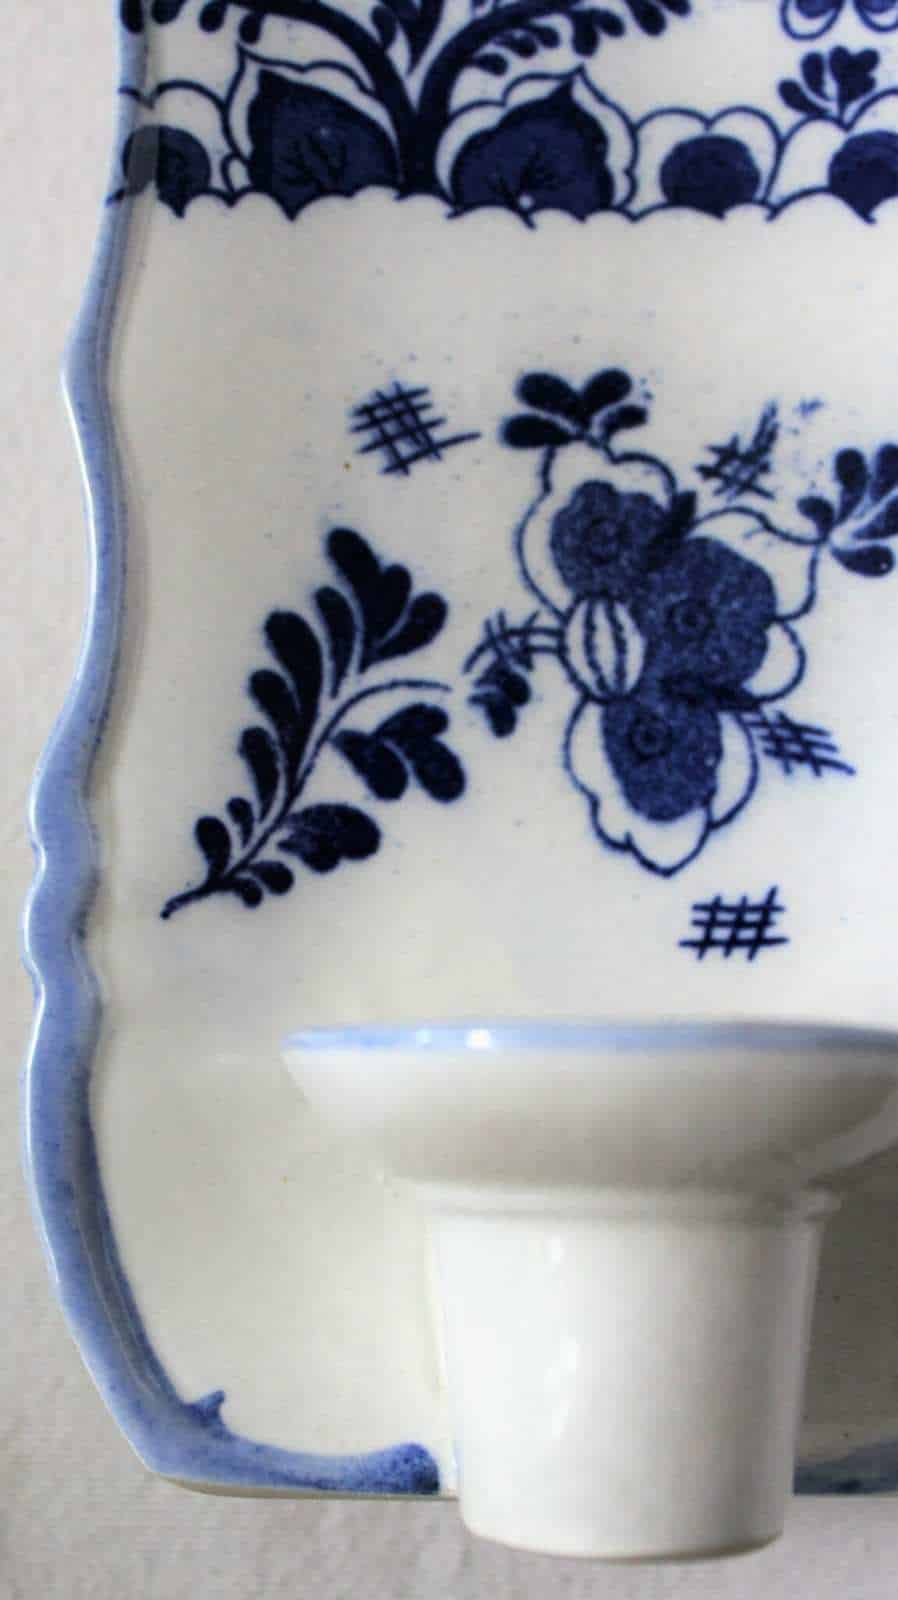 Wall Sconce / Hooded Candle Holders / Flower Vase, Delft ... on Wall Sconces That Hold Flowers id=22124